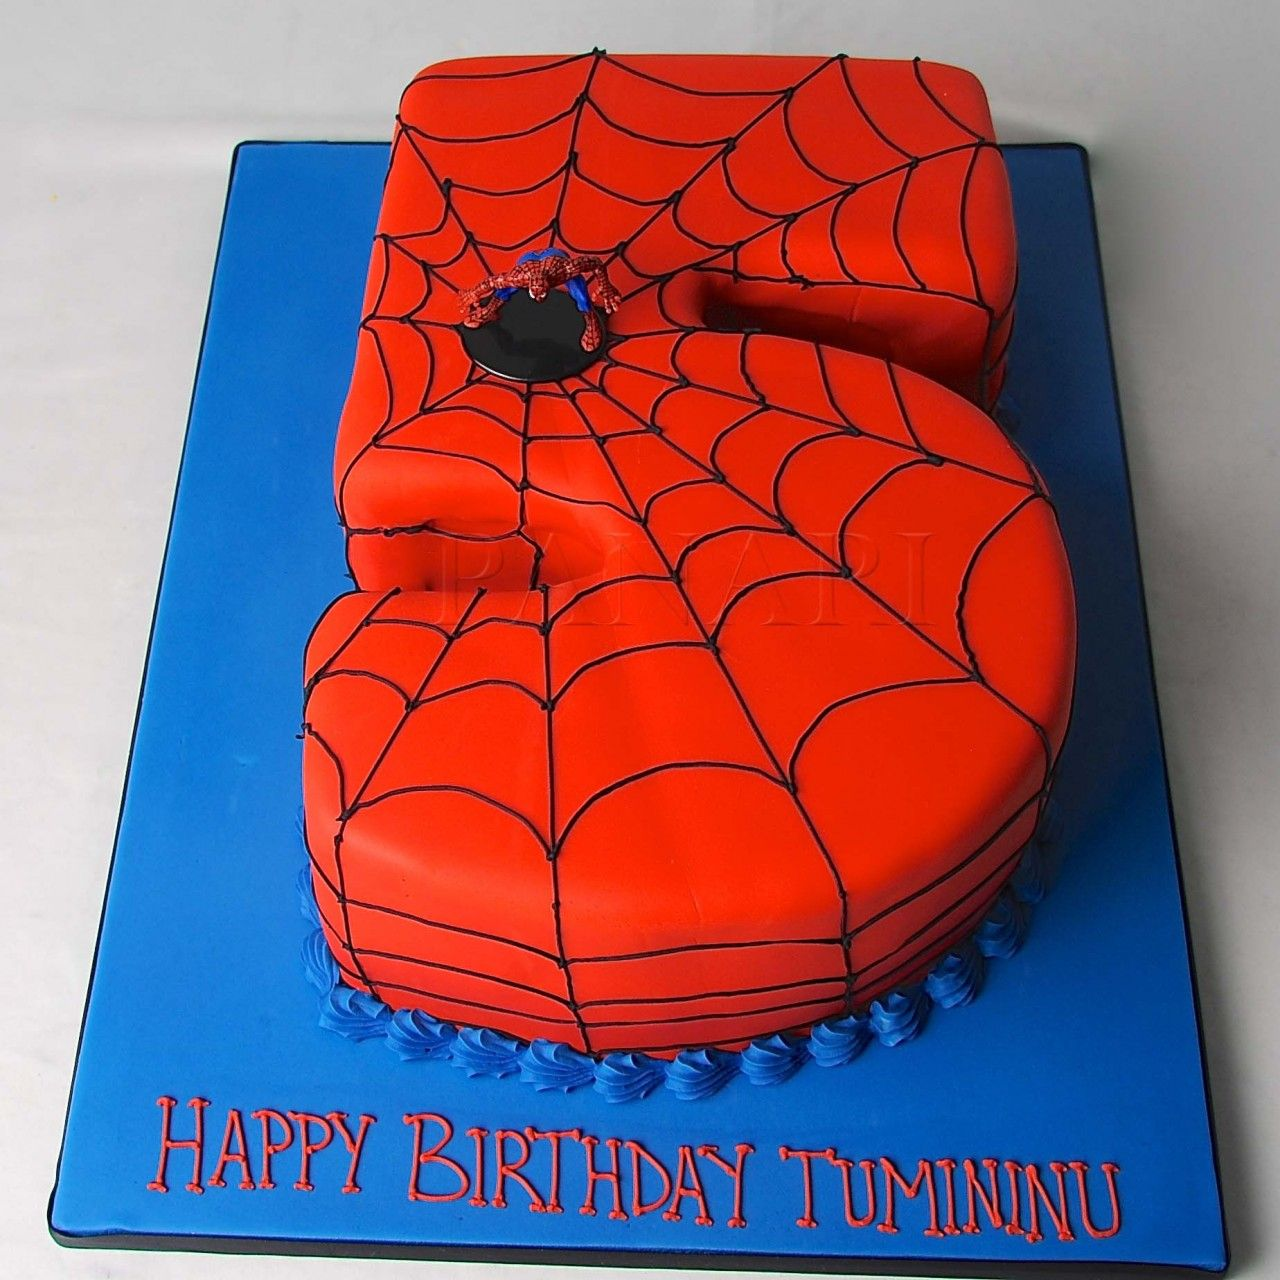 Cake Images Spiderman : Images For > Walmart Spiderman Cakes Ethan s Birthday ...